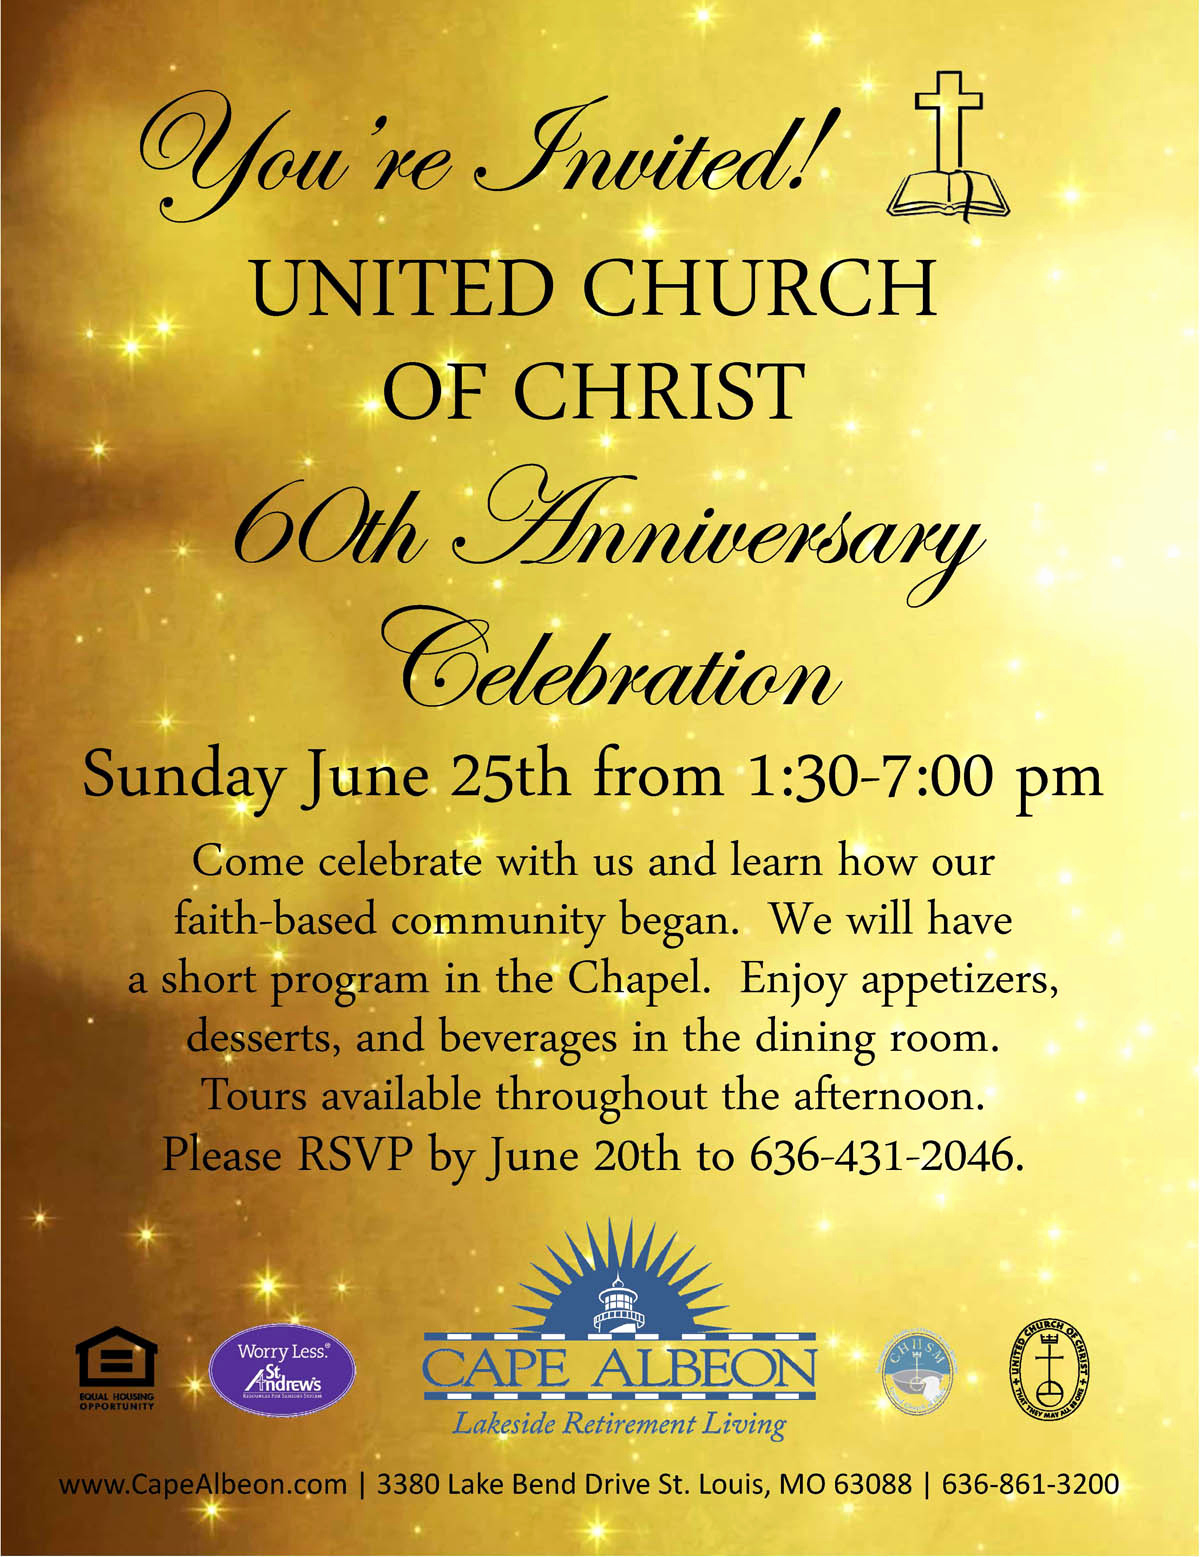 Church Anniversary Invitation Cards Unique United Church Christ 60th Anniversary Celebration